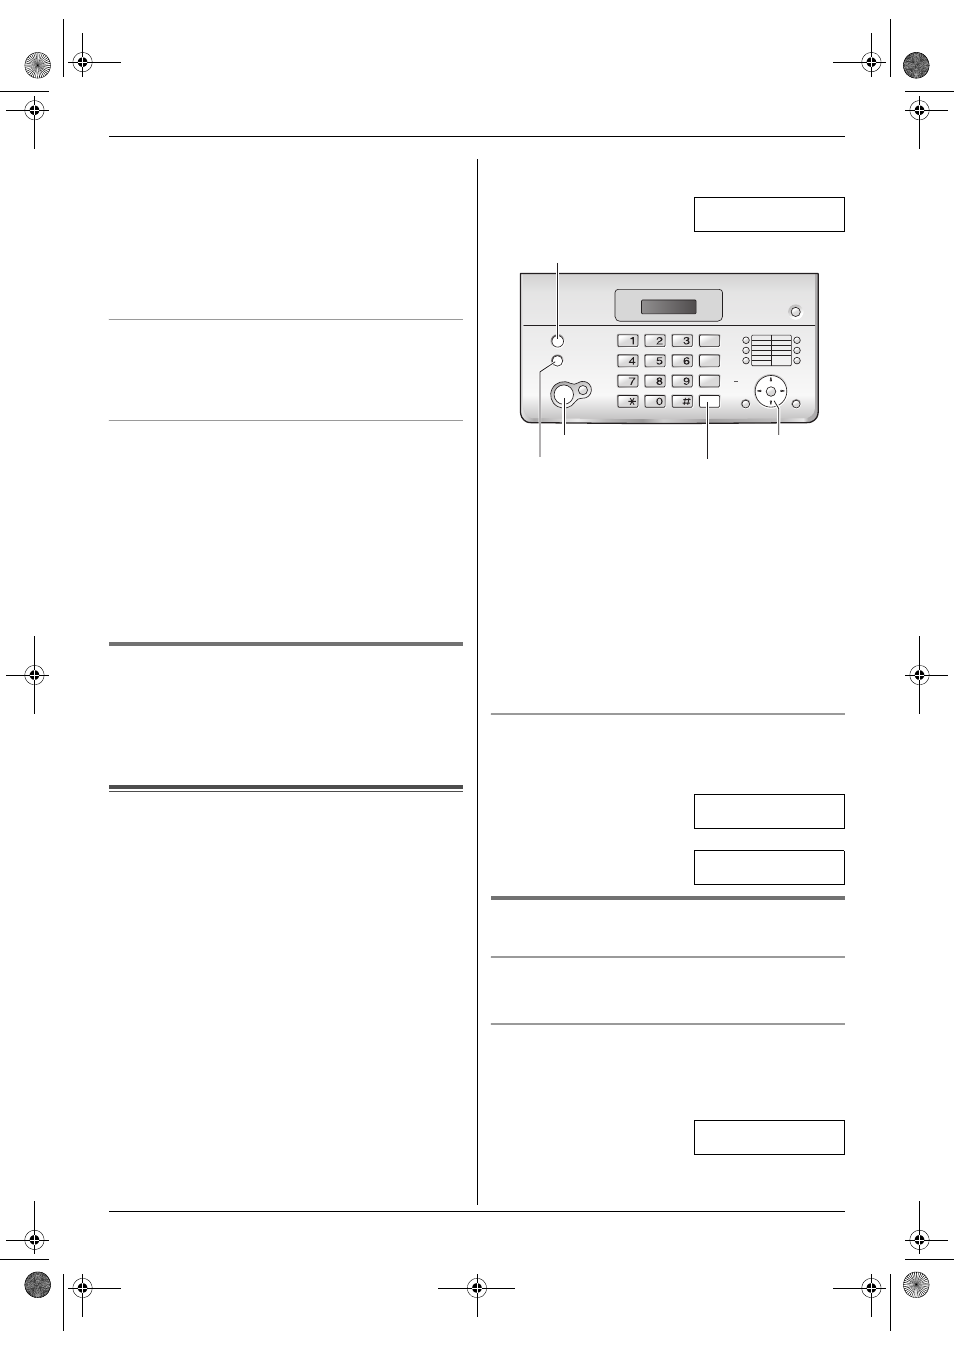 Инструкция Факс Panasonic Kx Ft984 - картинка 1